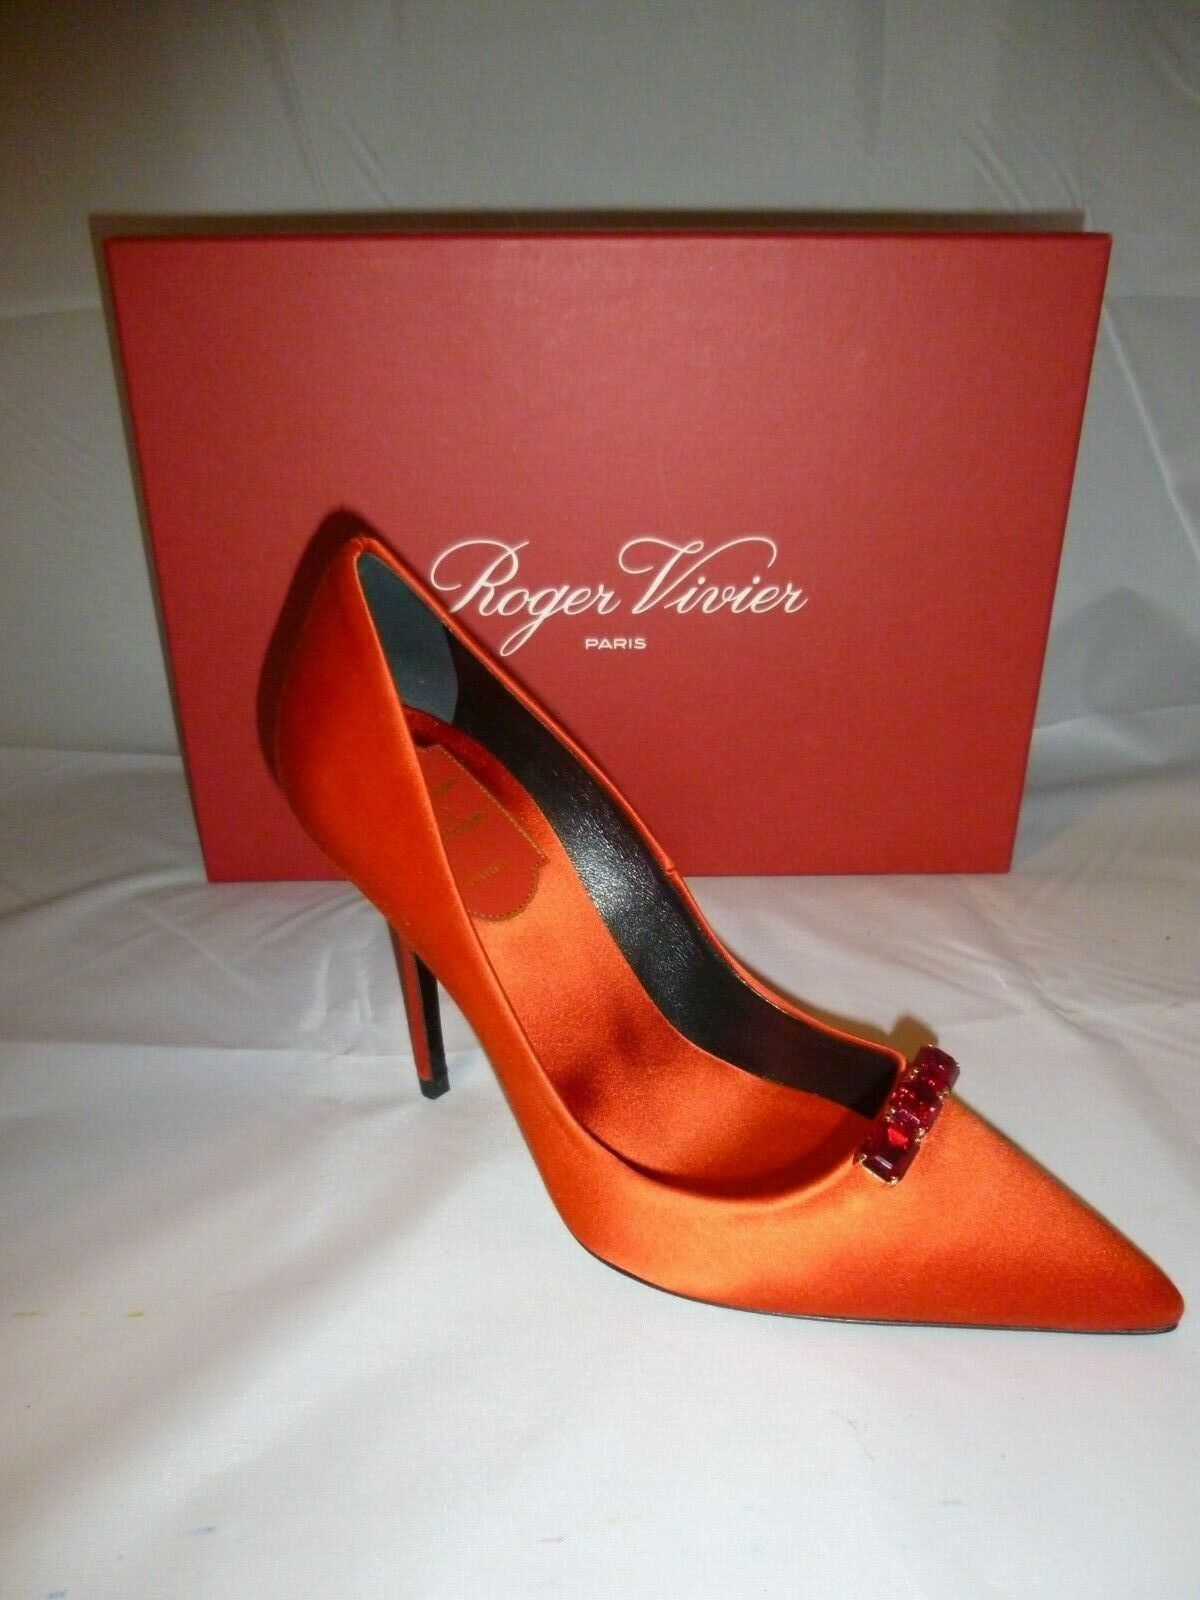 vendita online Roger Vivier scarpe heels rosso satin satin satin with ruby colored crystal jewels SZ 5  1050  economico